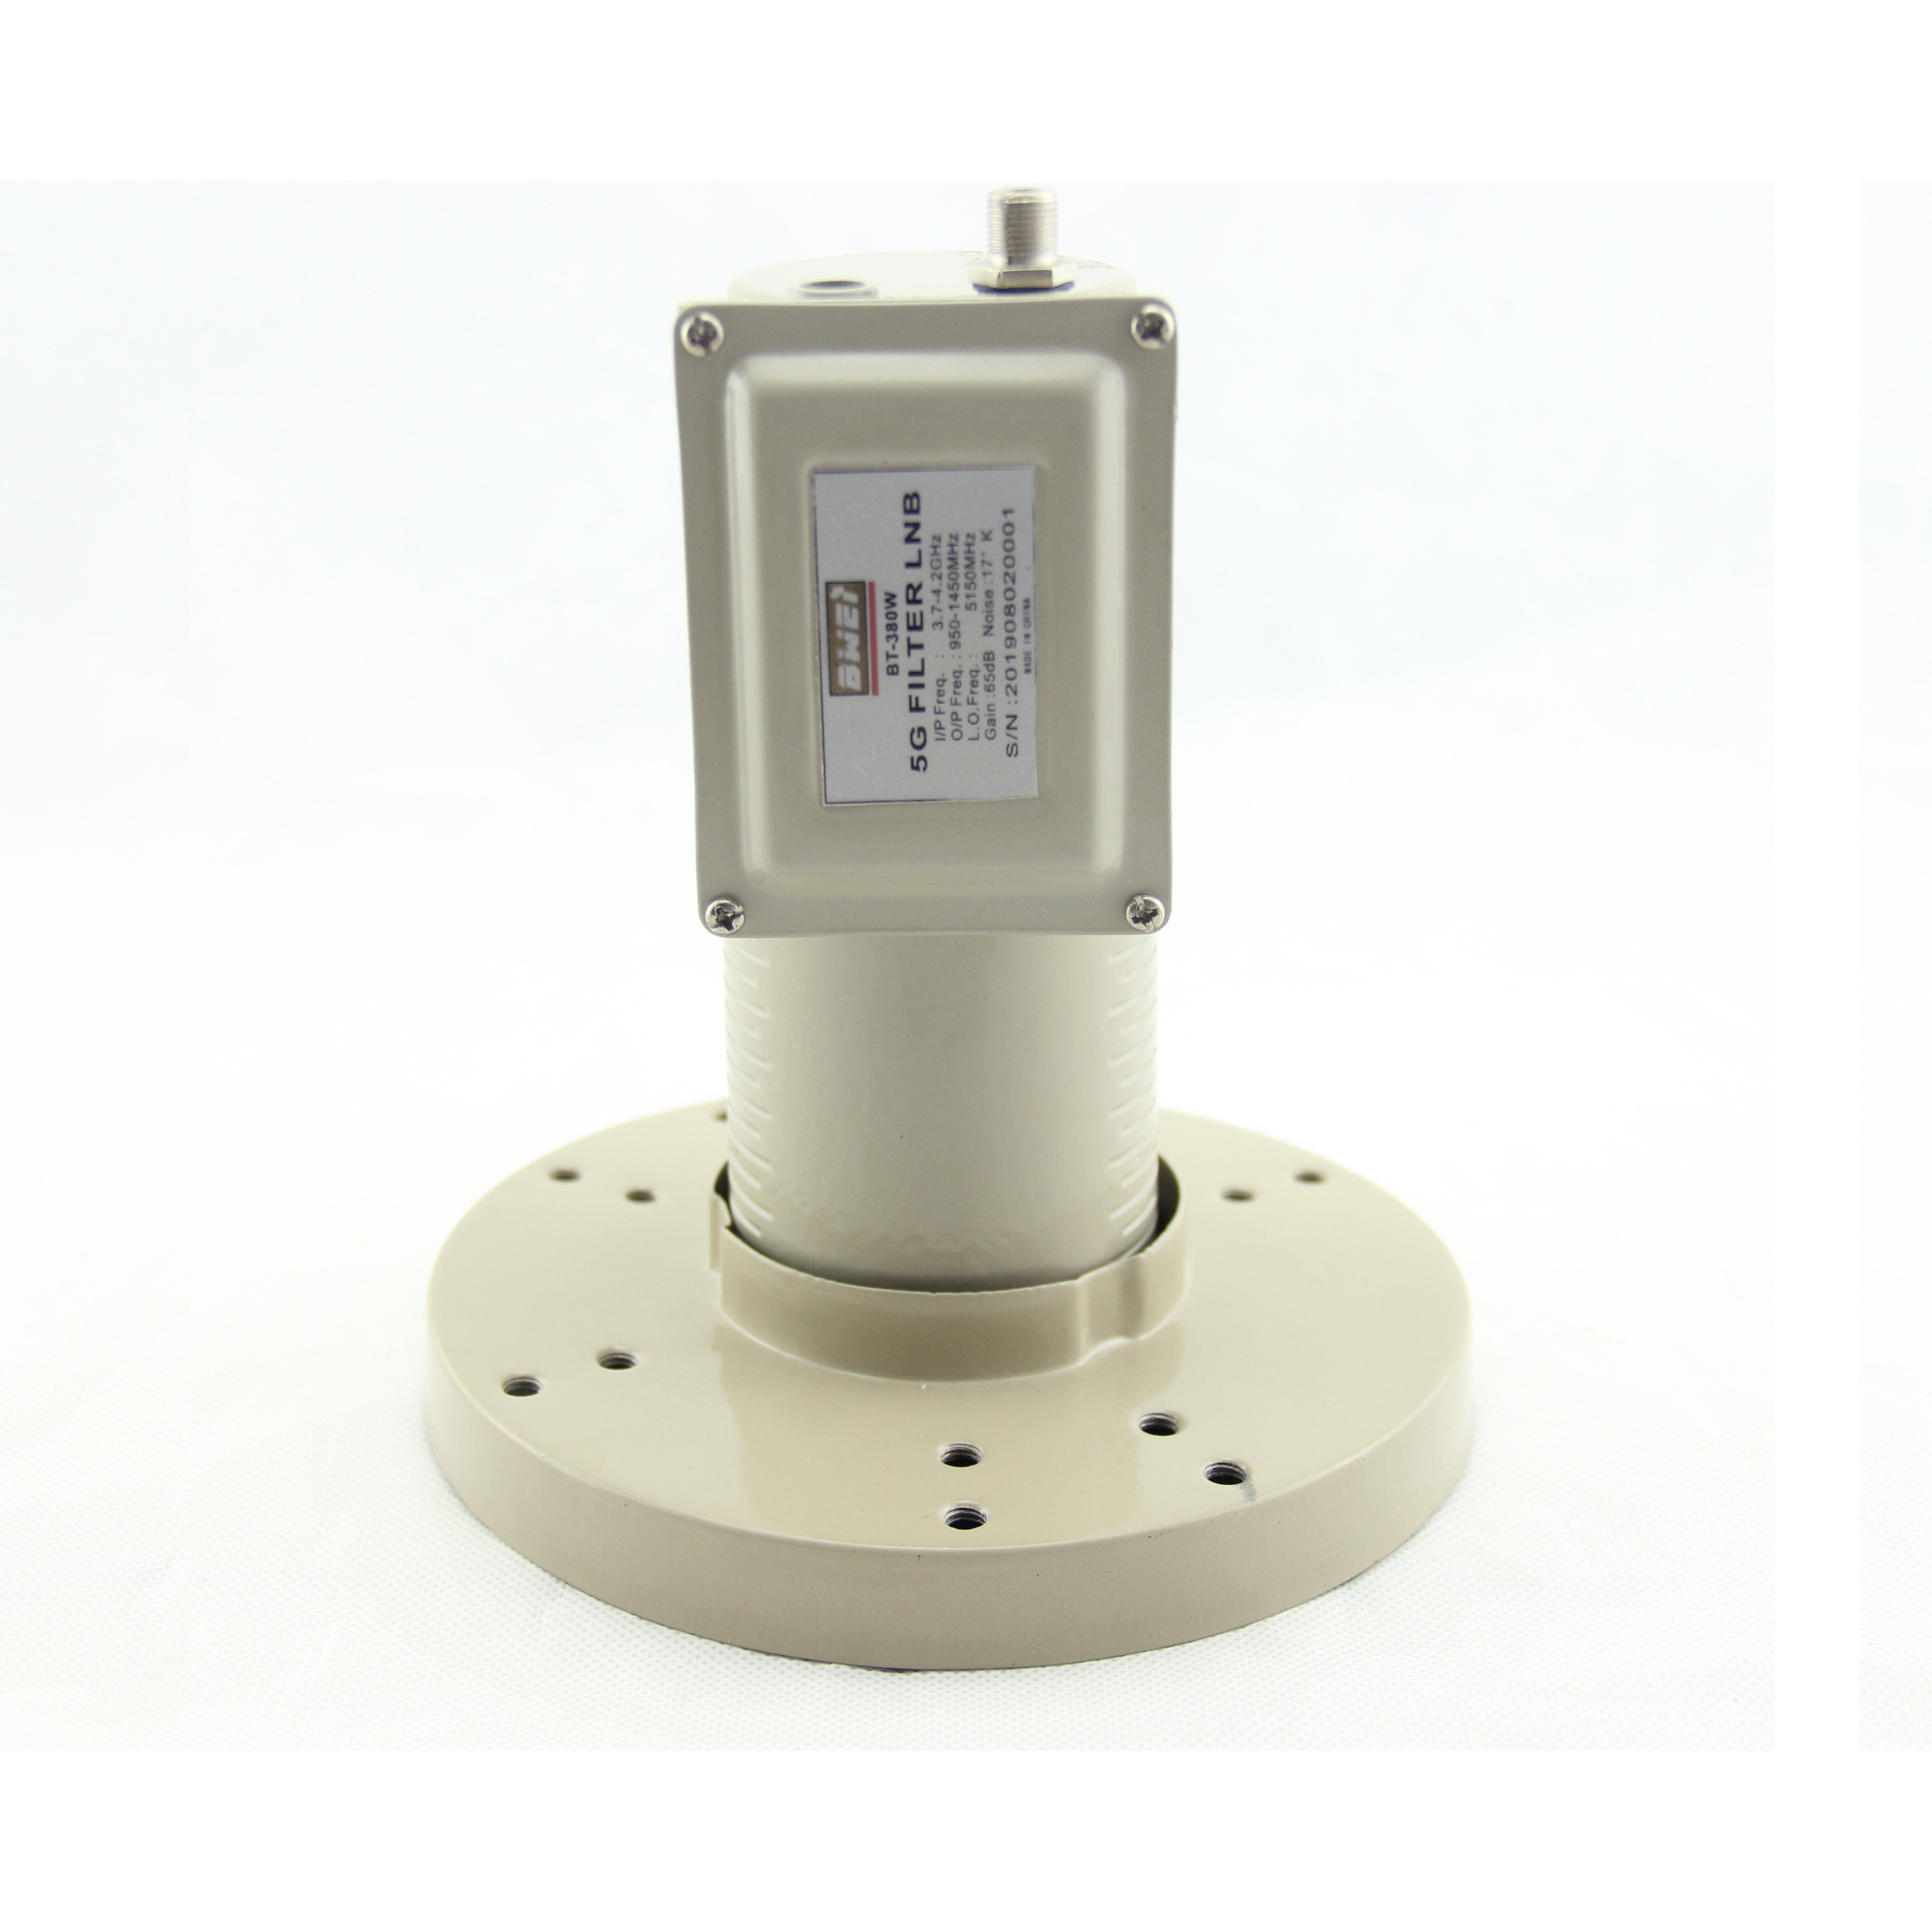 Special Mobile Tower Filter LNBF C Band 5150MHz LNBF For Wimax Signal